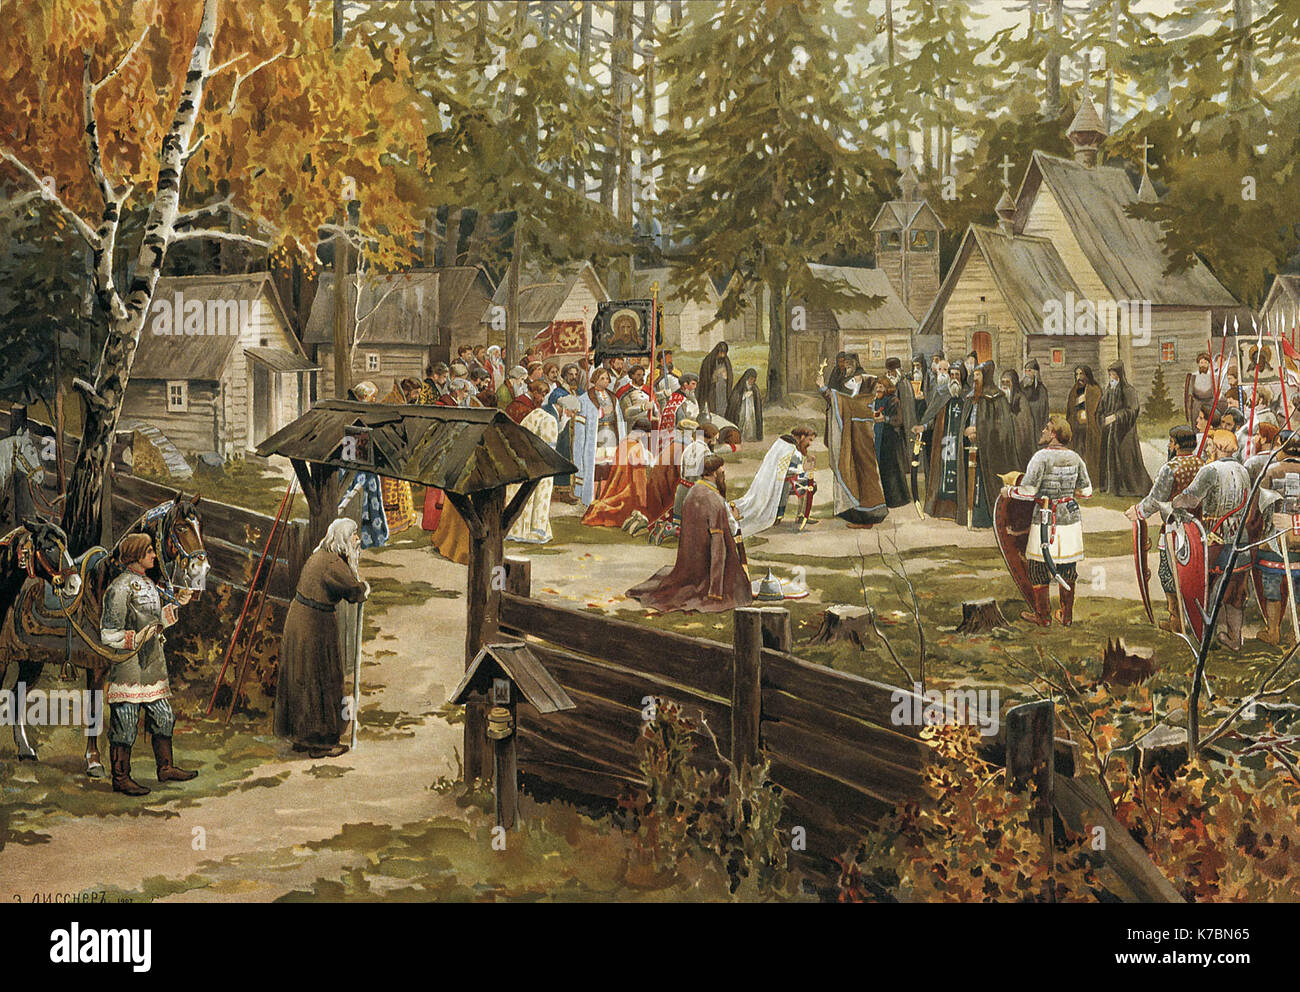 Sergius of Radonezh blessing Dmitry Donskoy in Trinity Sergius Lavra, before the Battle of Kulikovo, depicted in a painting by Ernst Lissner - Stock Image